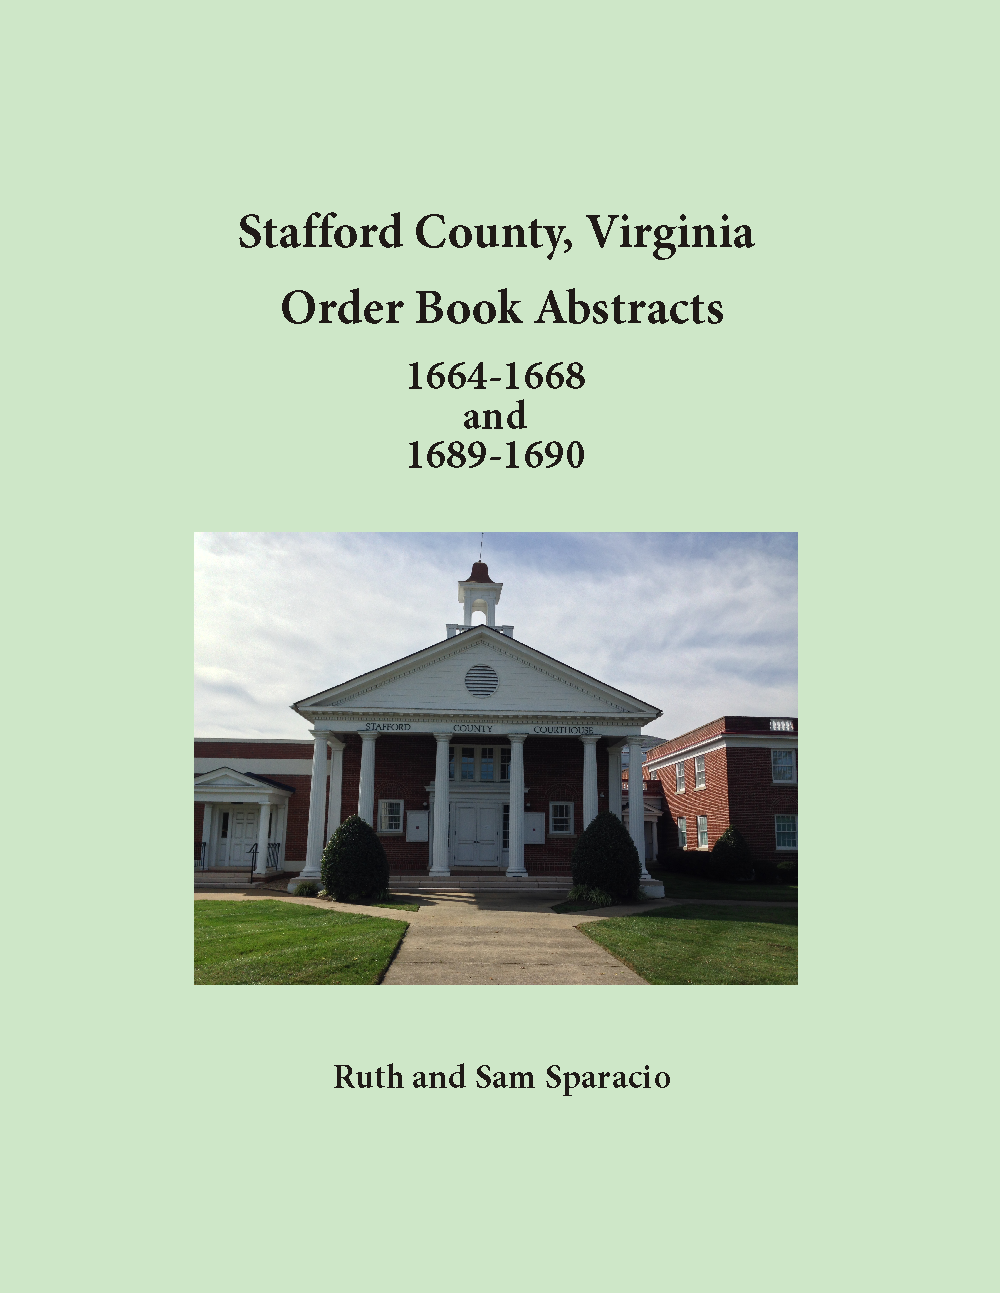 Stafford County Virginia Order Book 1664-1668 and 1689-1690